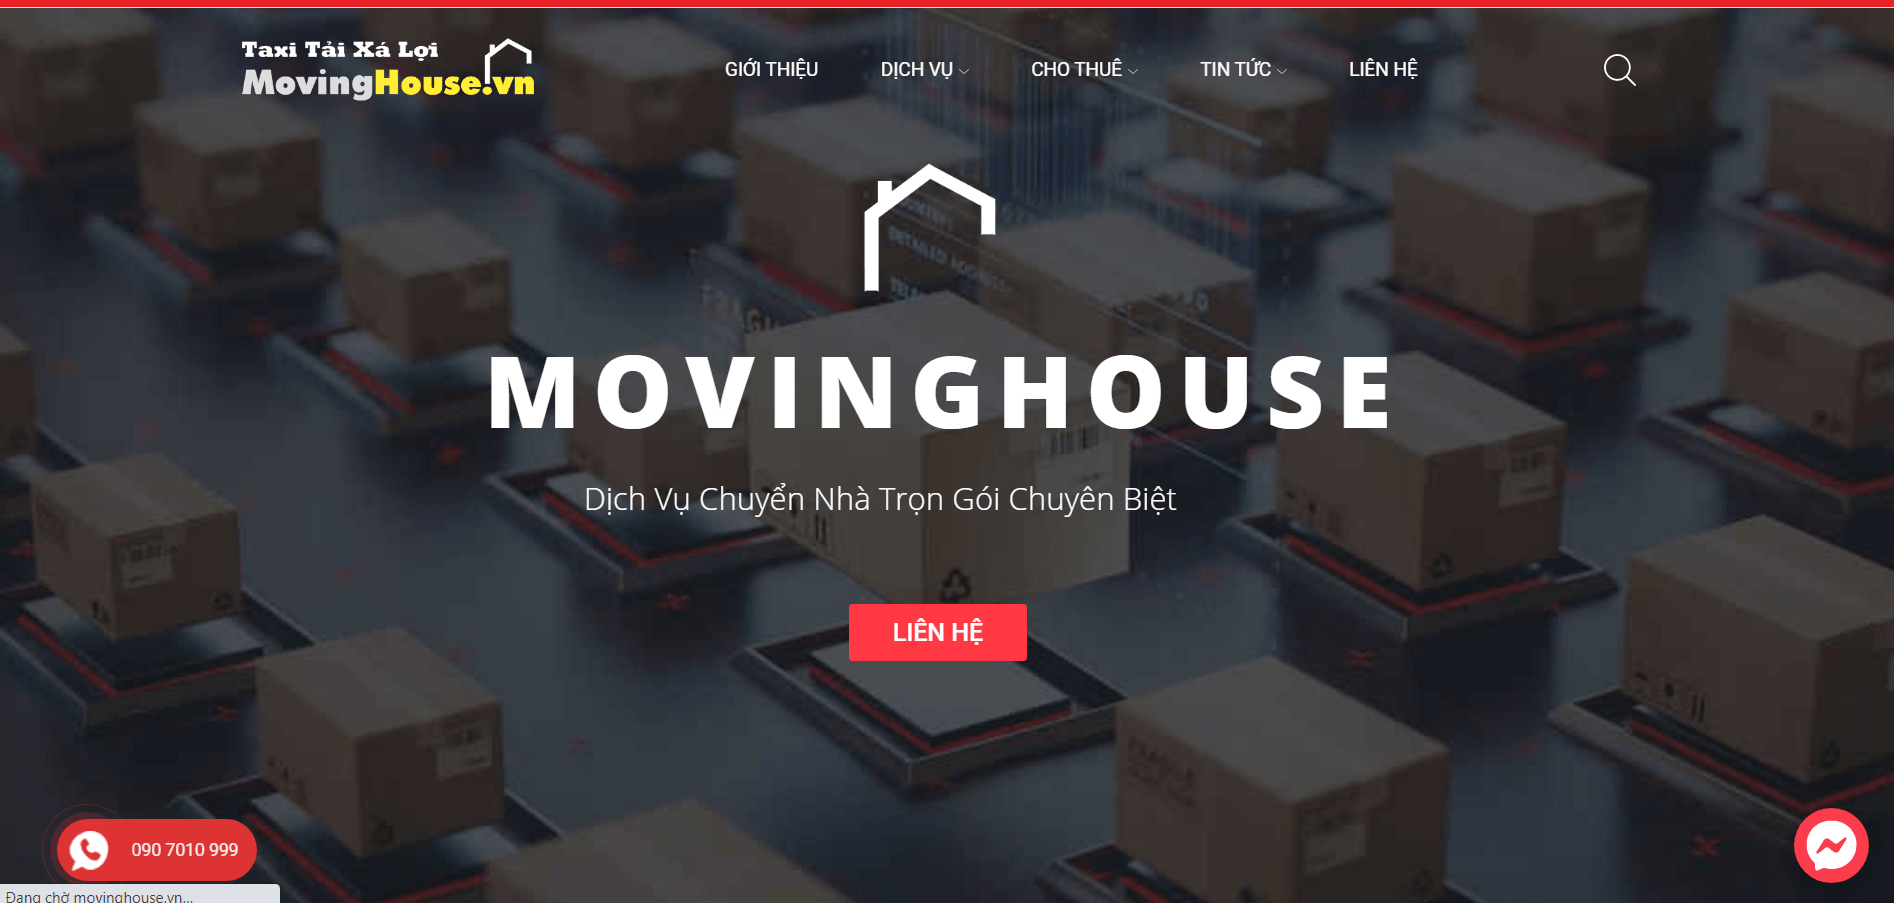 Movinghouse